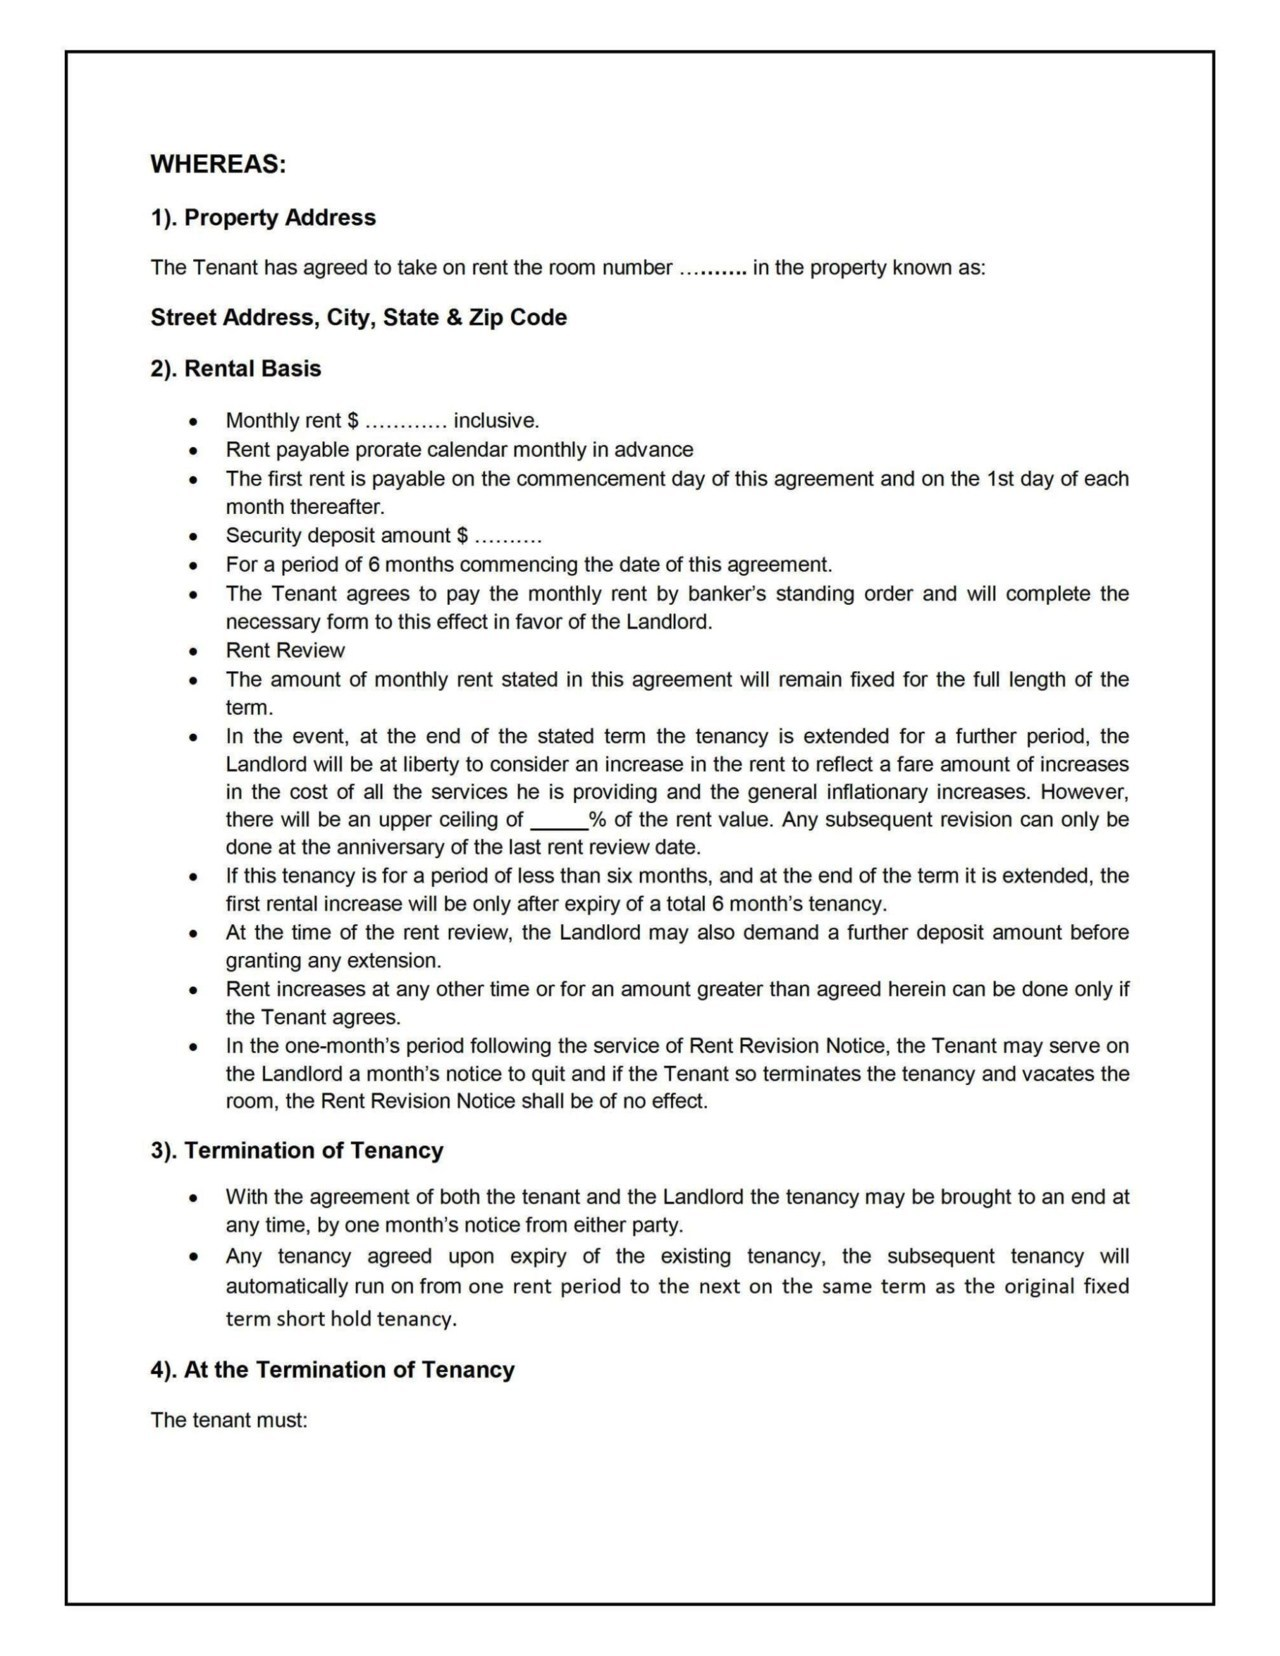 House sharing agreement template sampletemplatess for House sharing agreement template